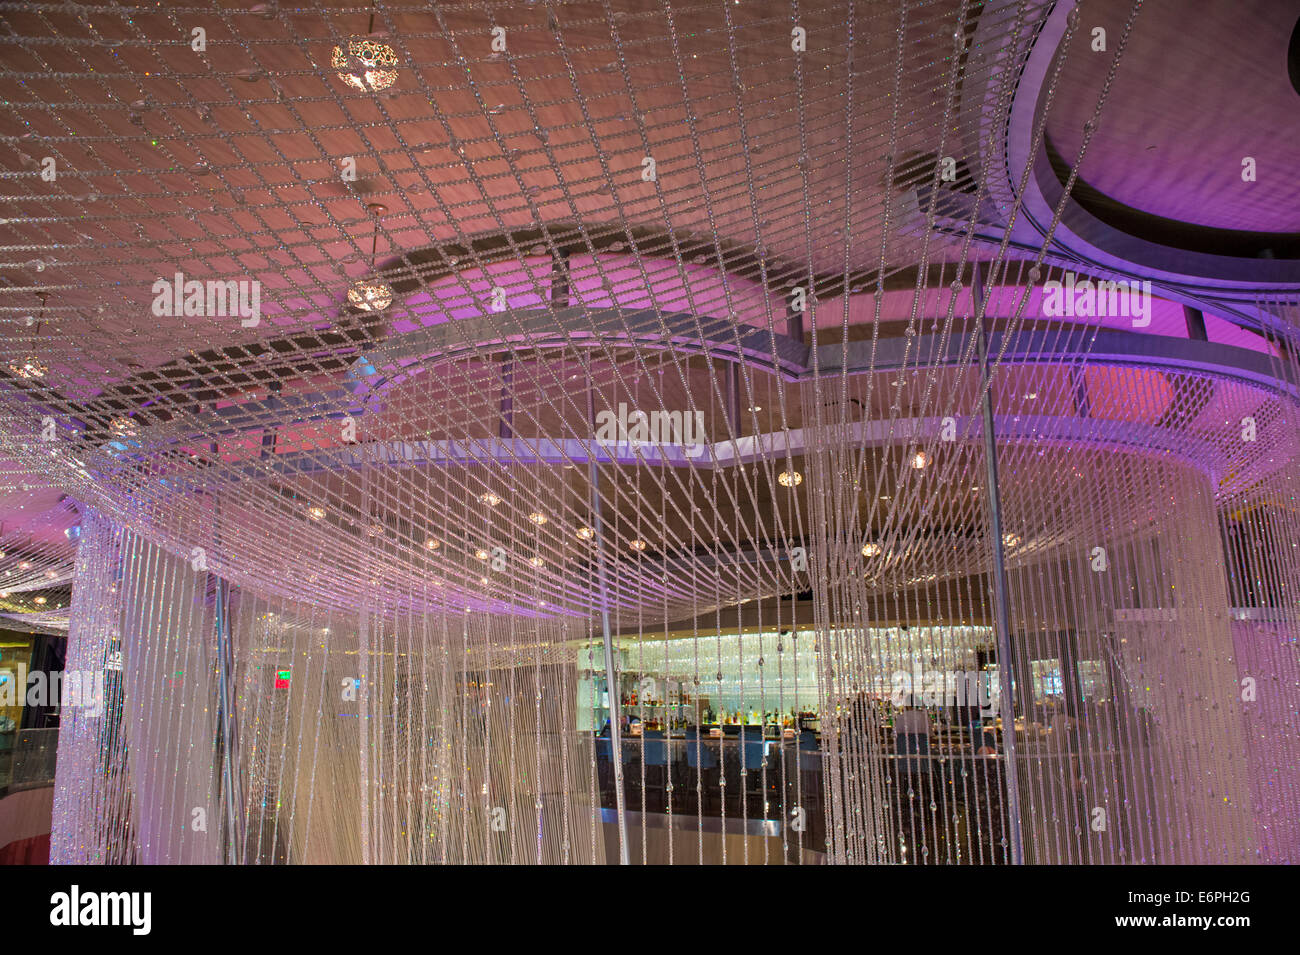 The chandelier bar at the cosmopolitan hotel casino in las vegas the chandelier bar at the cosmopolitan hotel casino in las vegas aloadofball Image collections